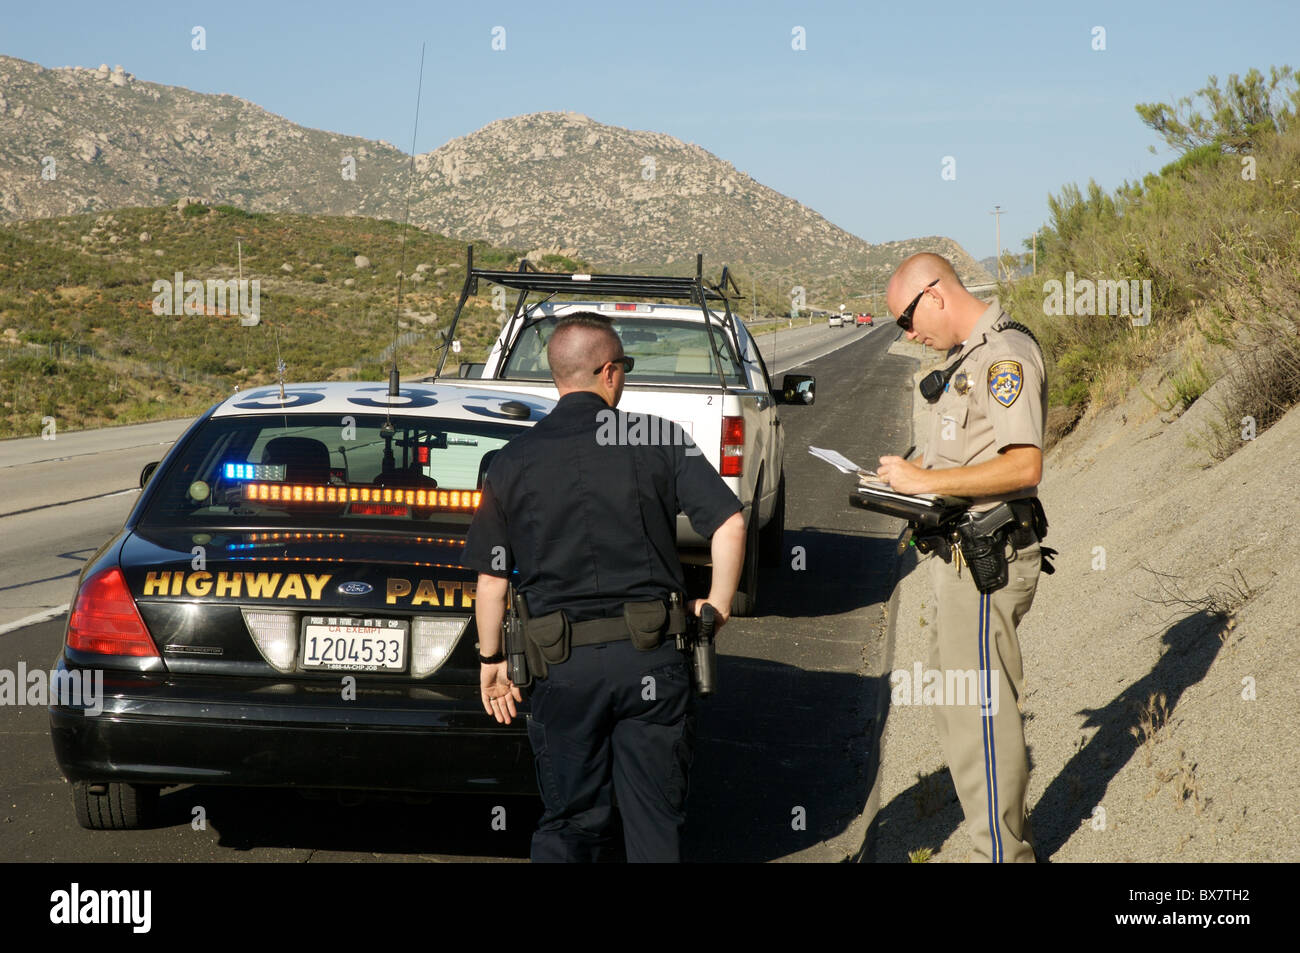 California Highway Patrol  >> A Local Police Officer Assists A California Highway Patrol Officer